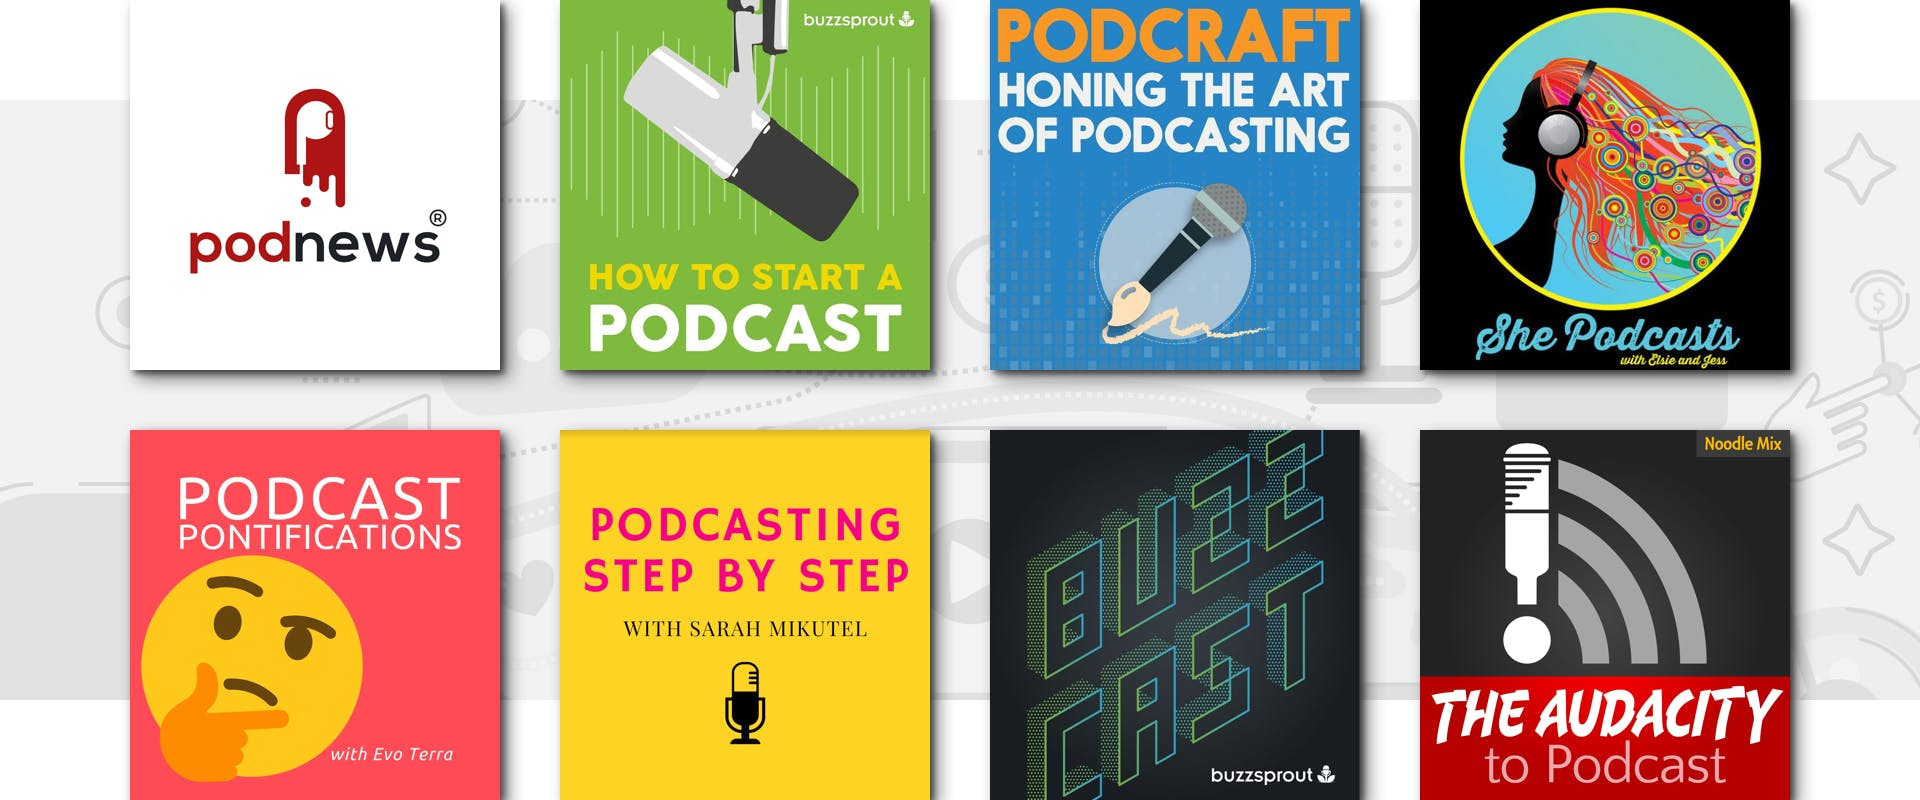 PODCASTING 101 - cover